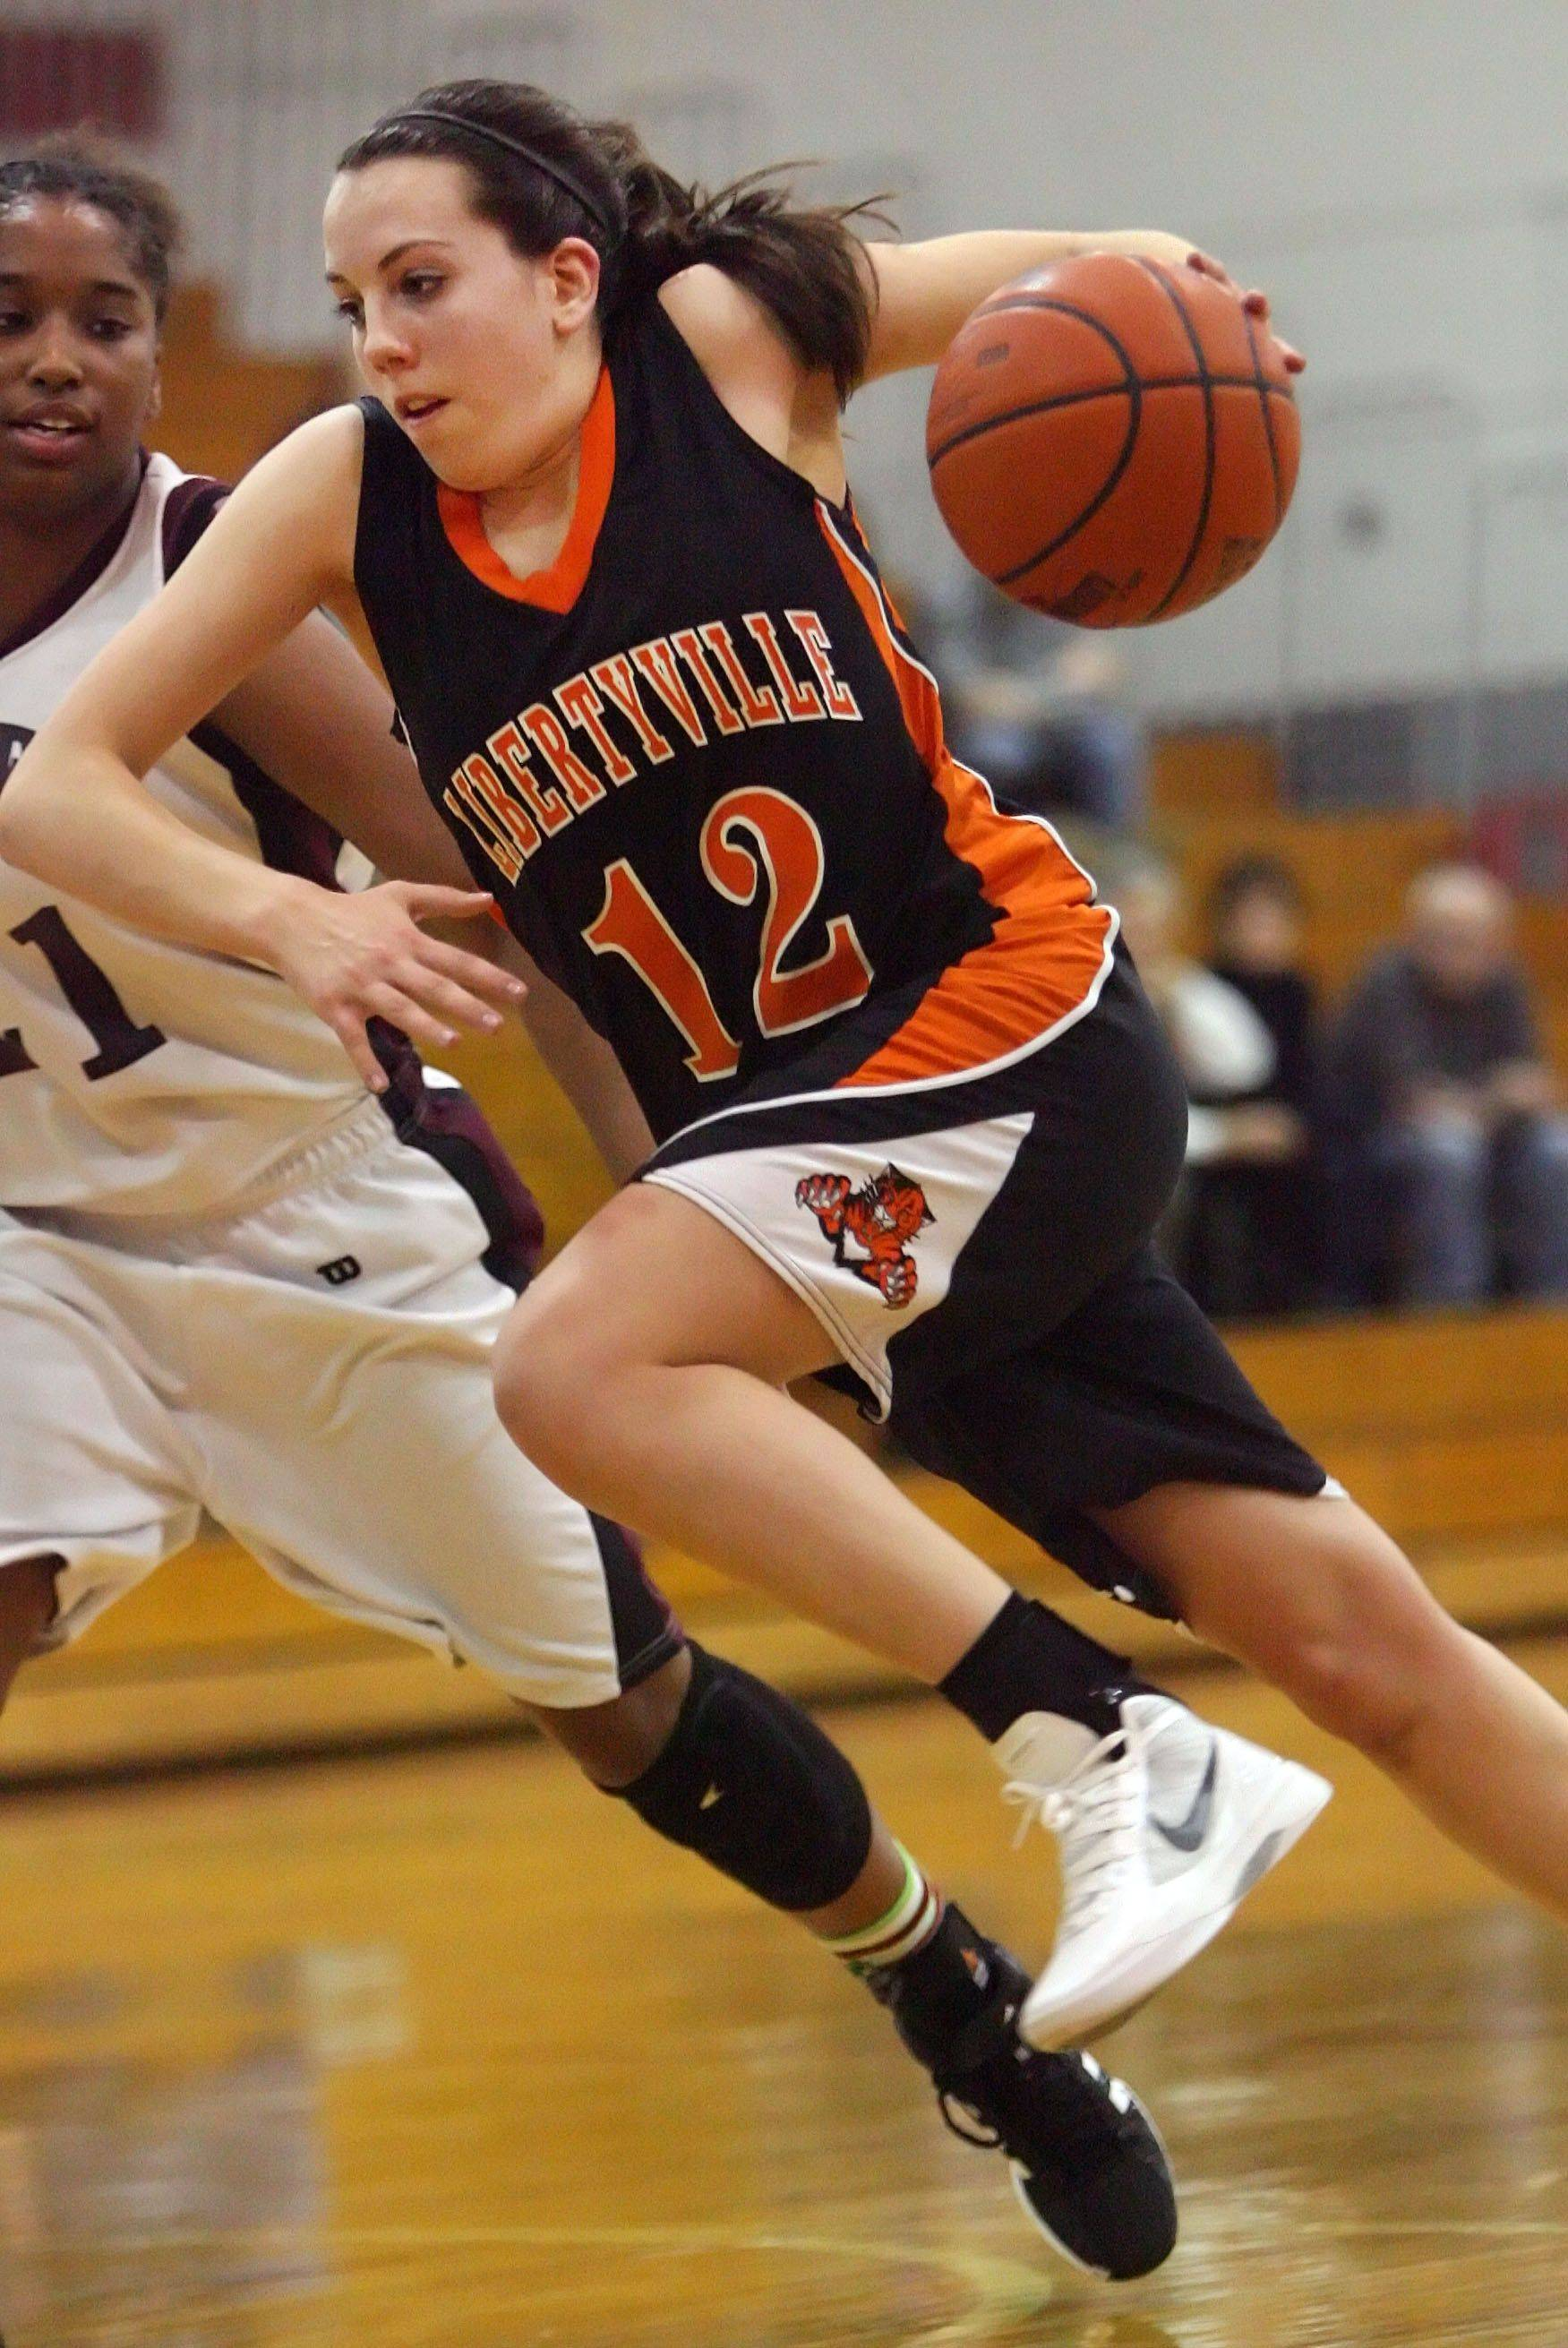 Libertyville's Olivia Mayer, right, drives on Zion-Benton's Samantha Rodriguez on Wednesday night at Mundelein.